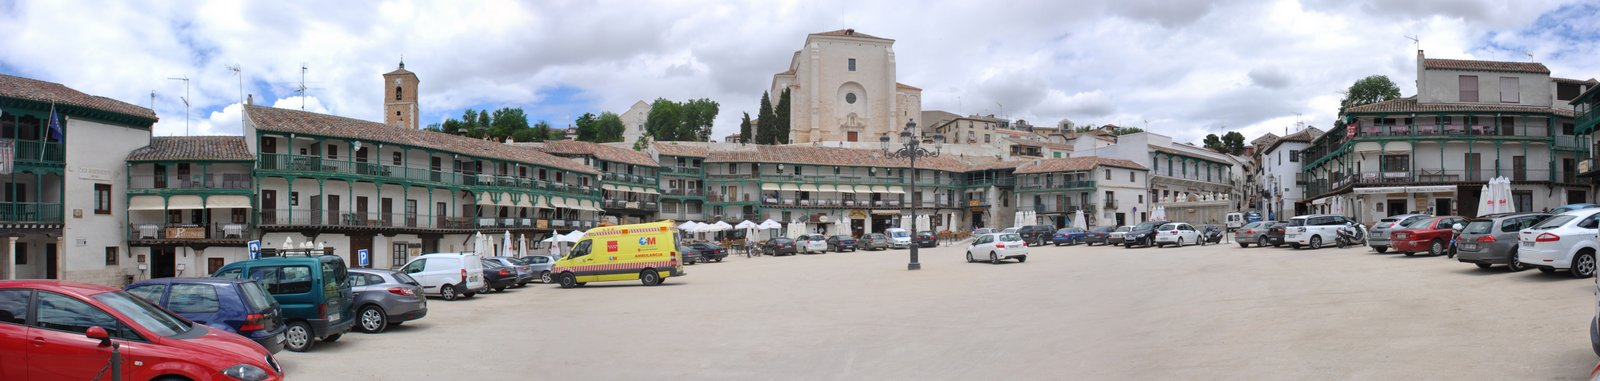 Plaza chinchon